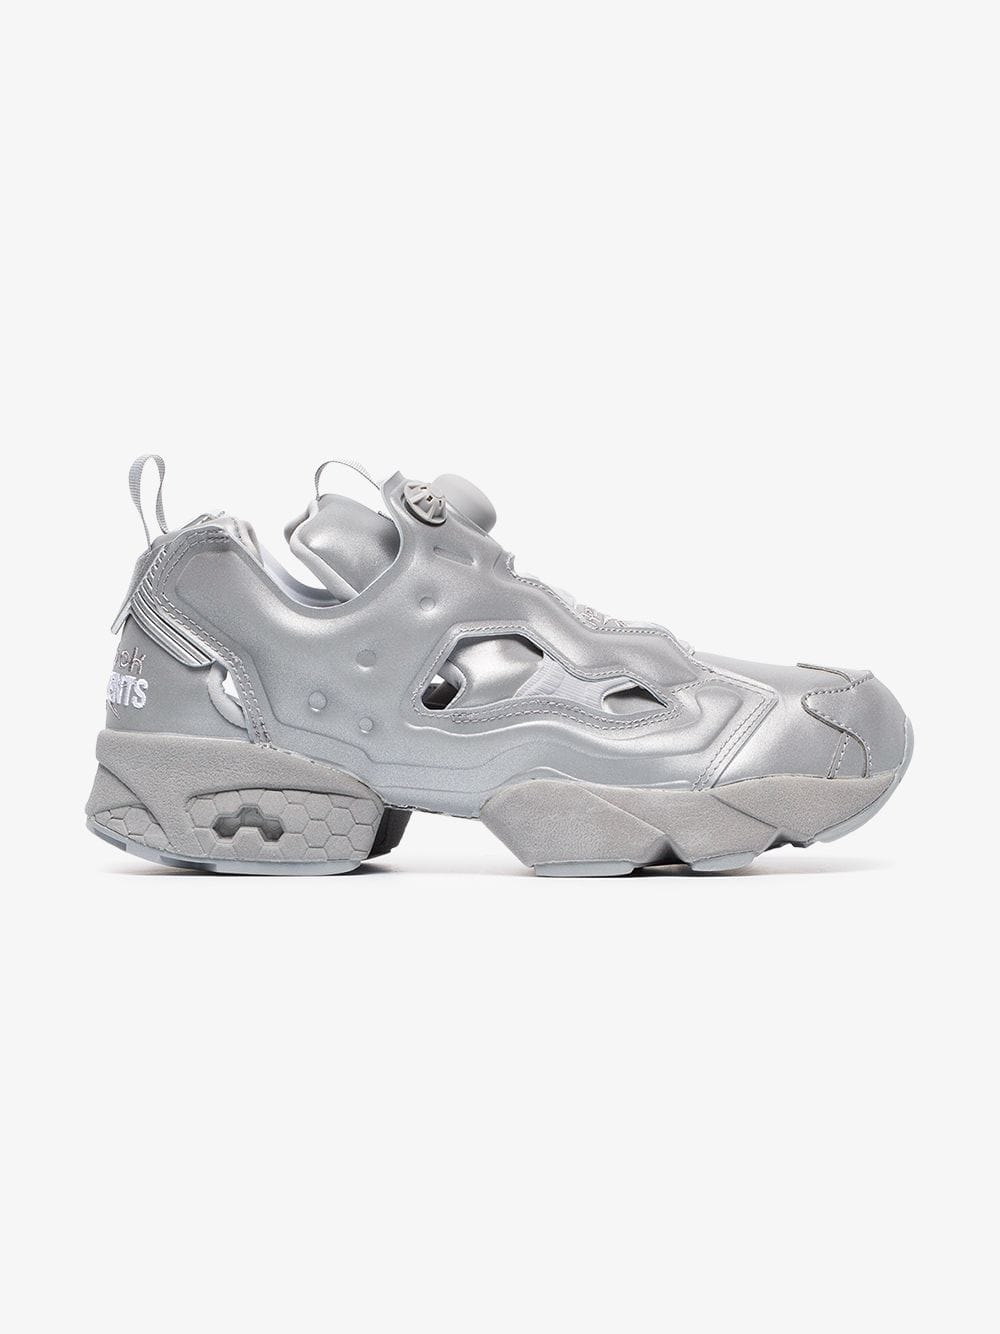 786b9c09dd5 Reebok Vetements x Reebok AW18 Instapump Fury - Reflective Silver 3M™ Size  11 - Slip Ons for Sale - Grailed